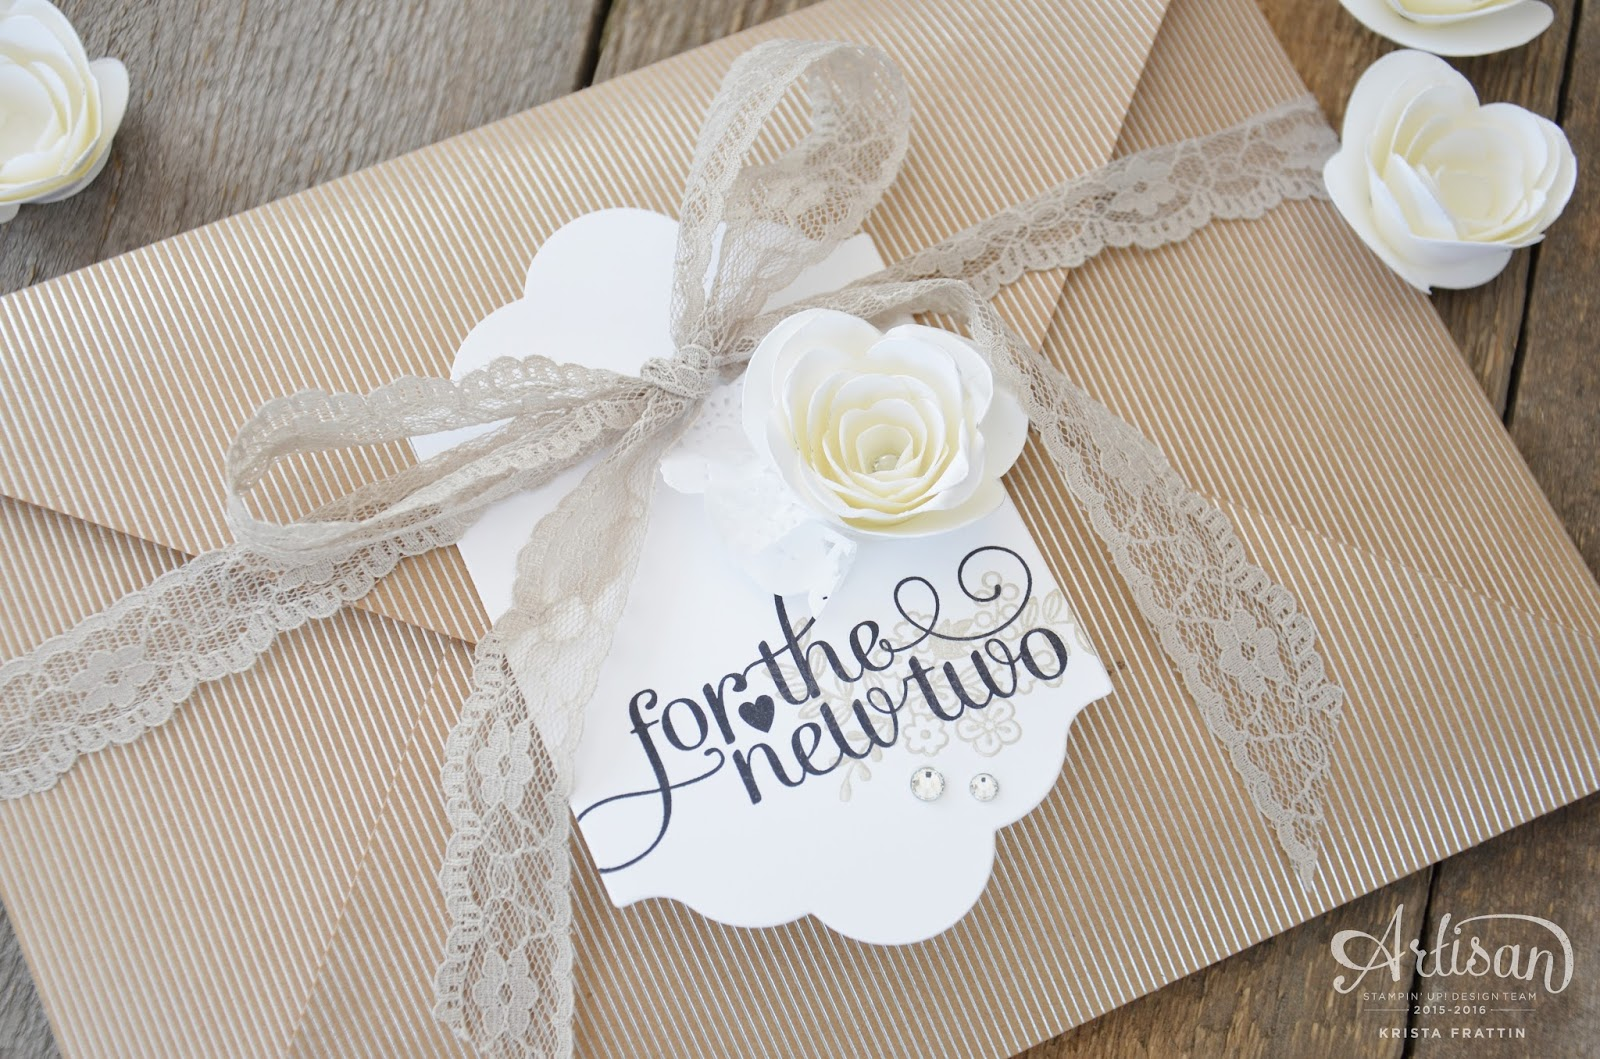 How To Wrap A Wedding Gift: Stampin' Dolce: Wedding Gift Wrap- Fancy Friday Blog Hop